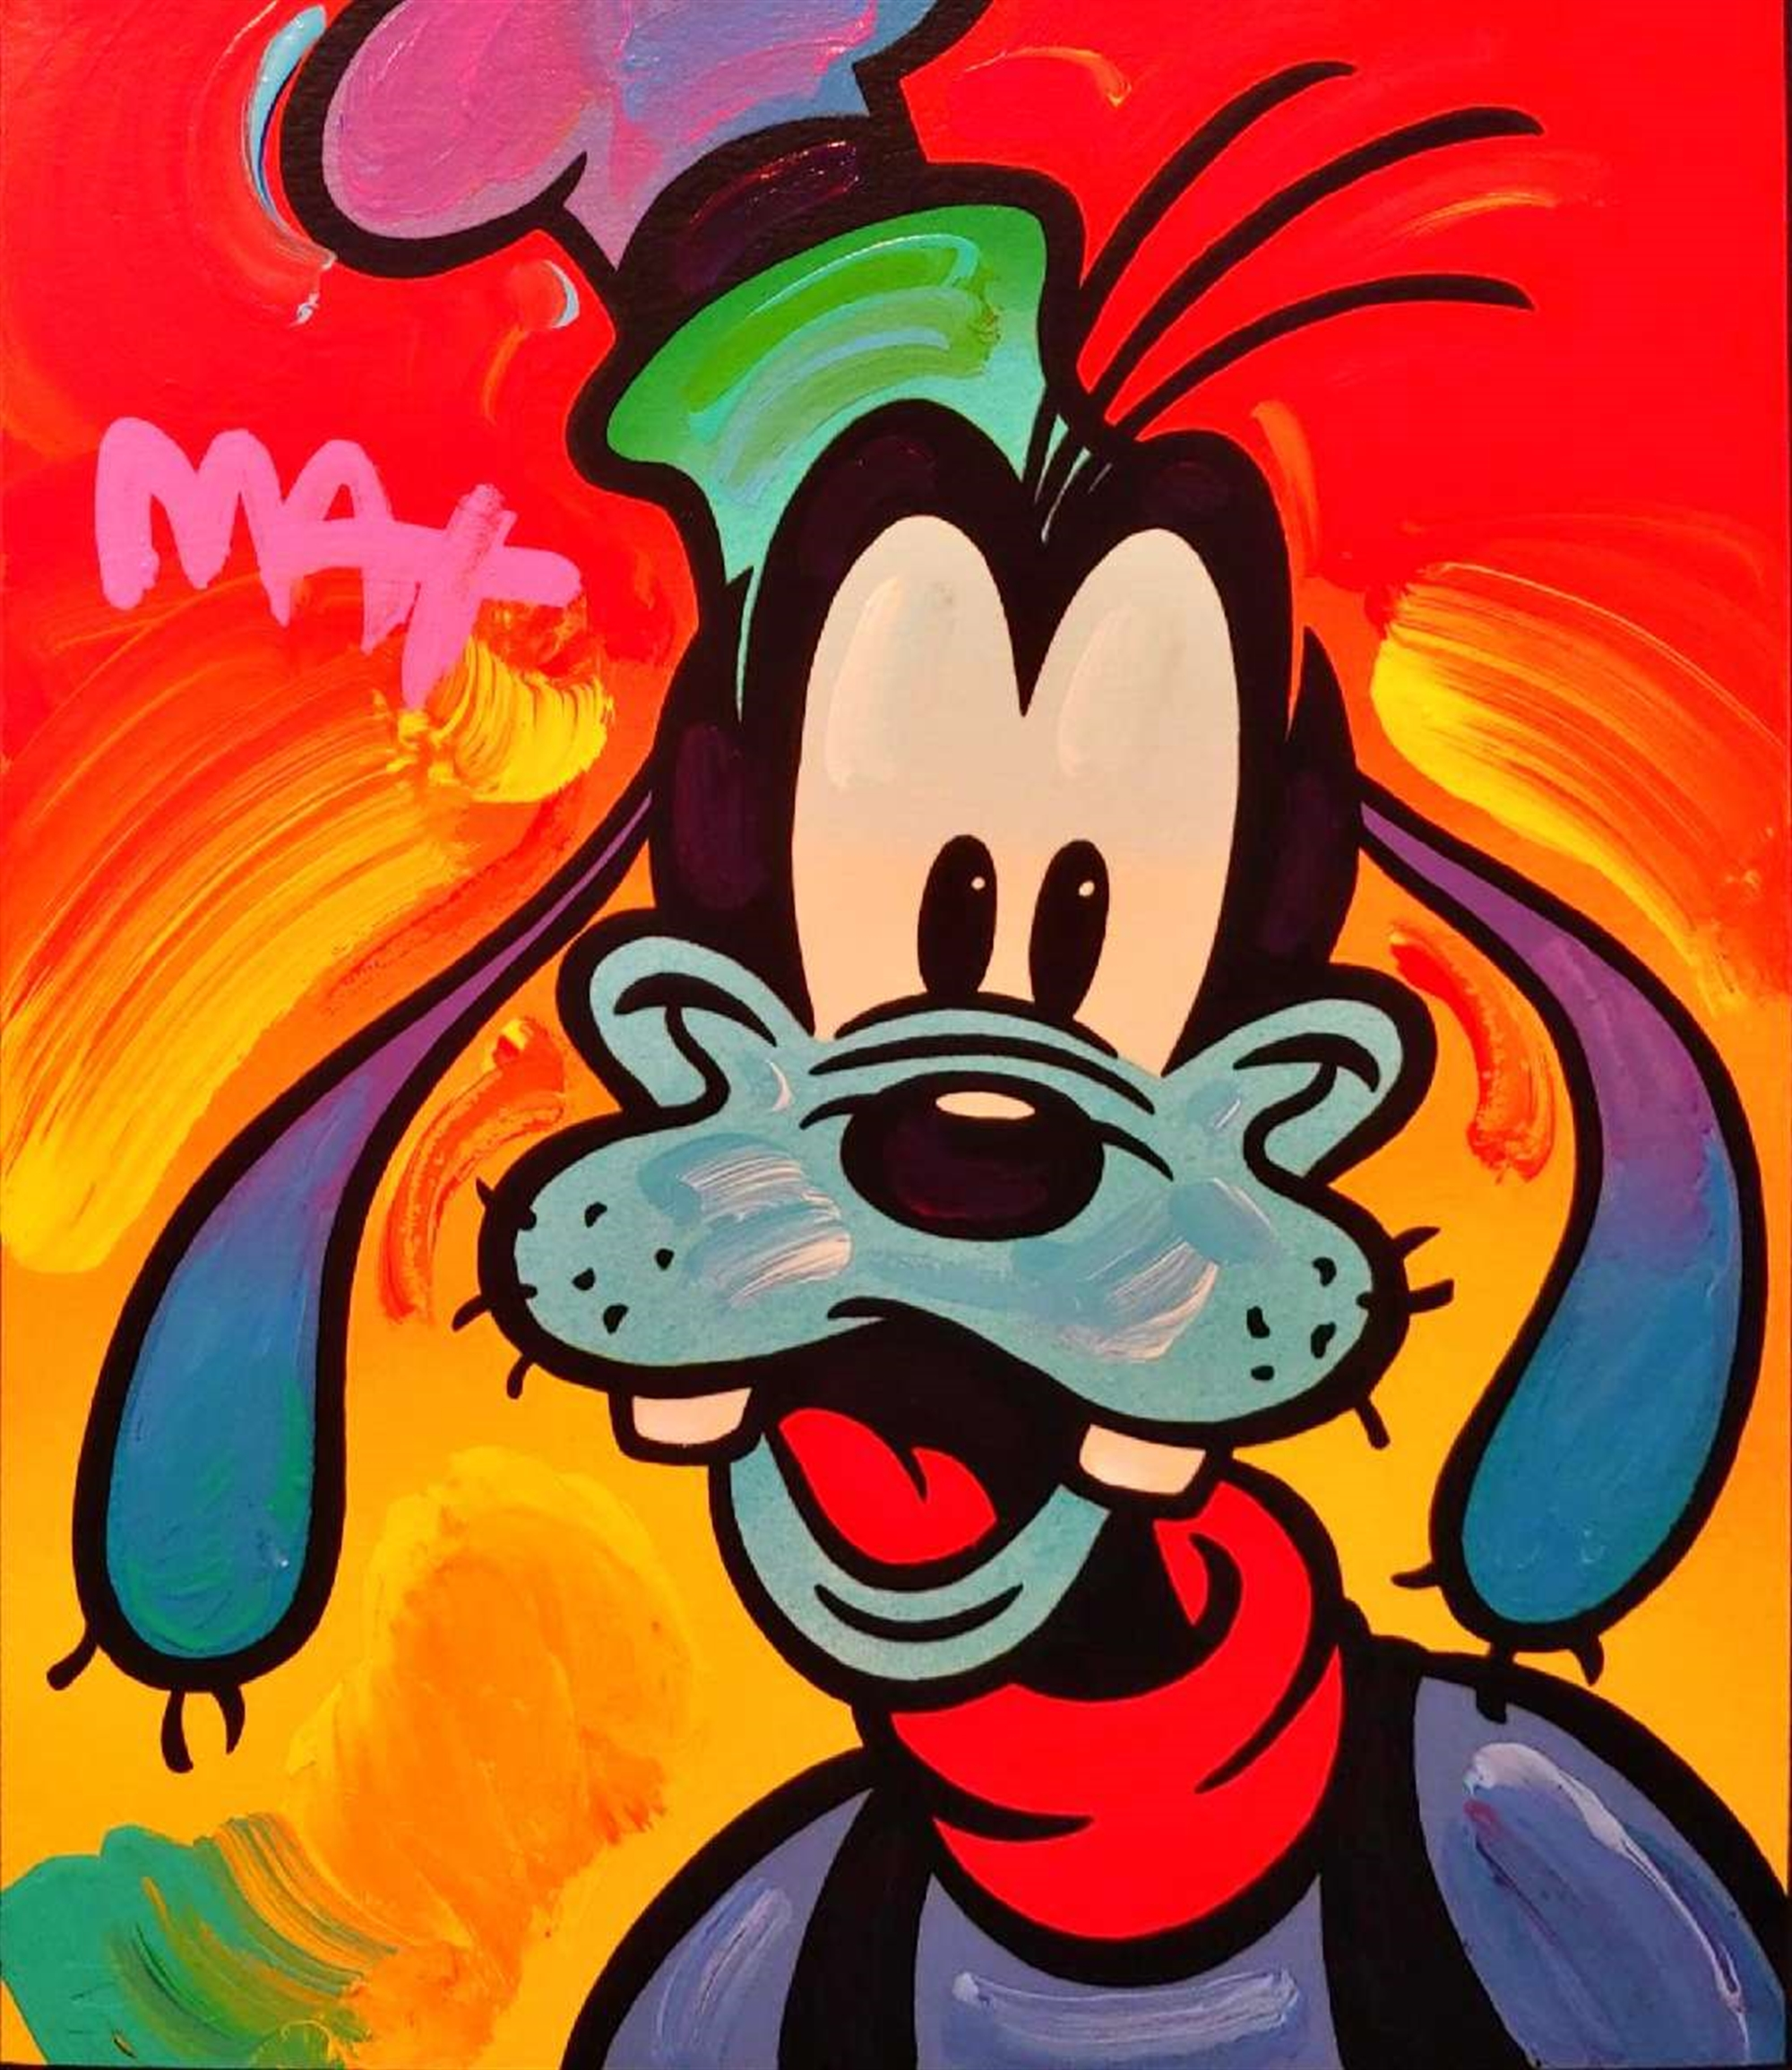 GOOFY by Peter Max